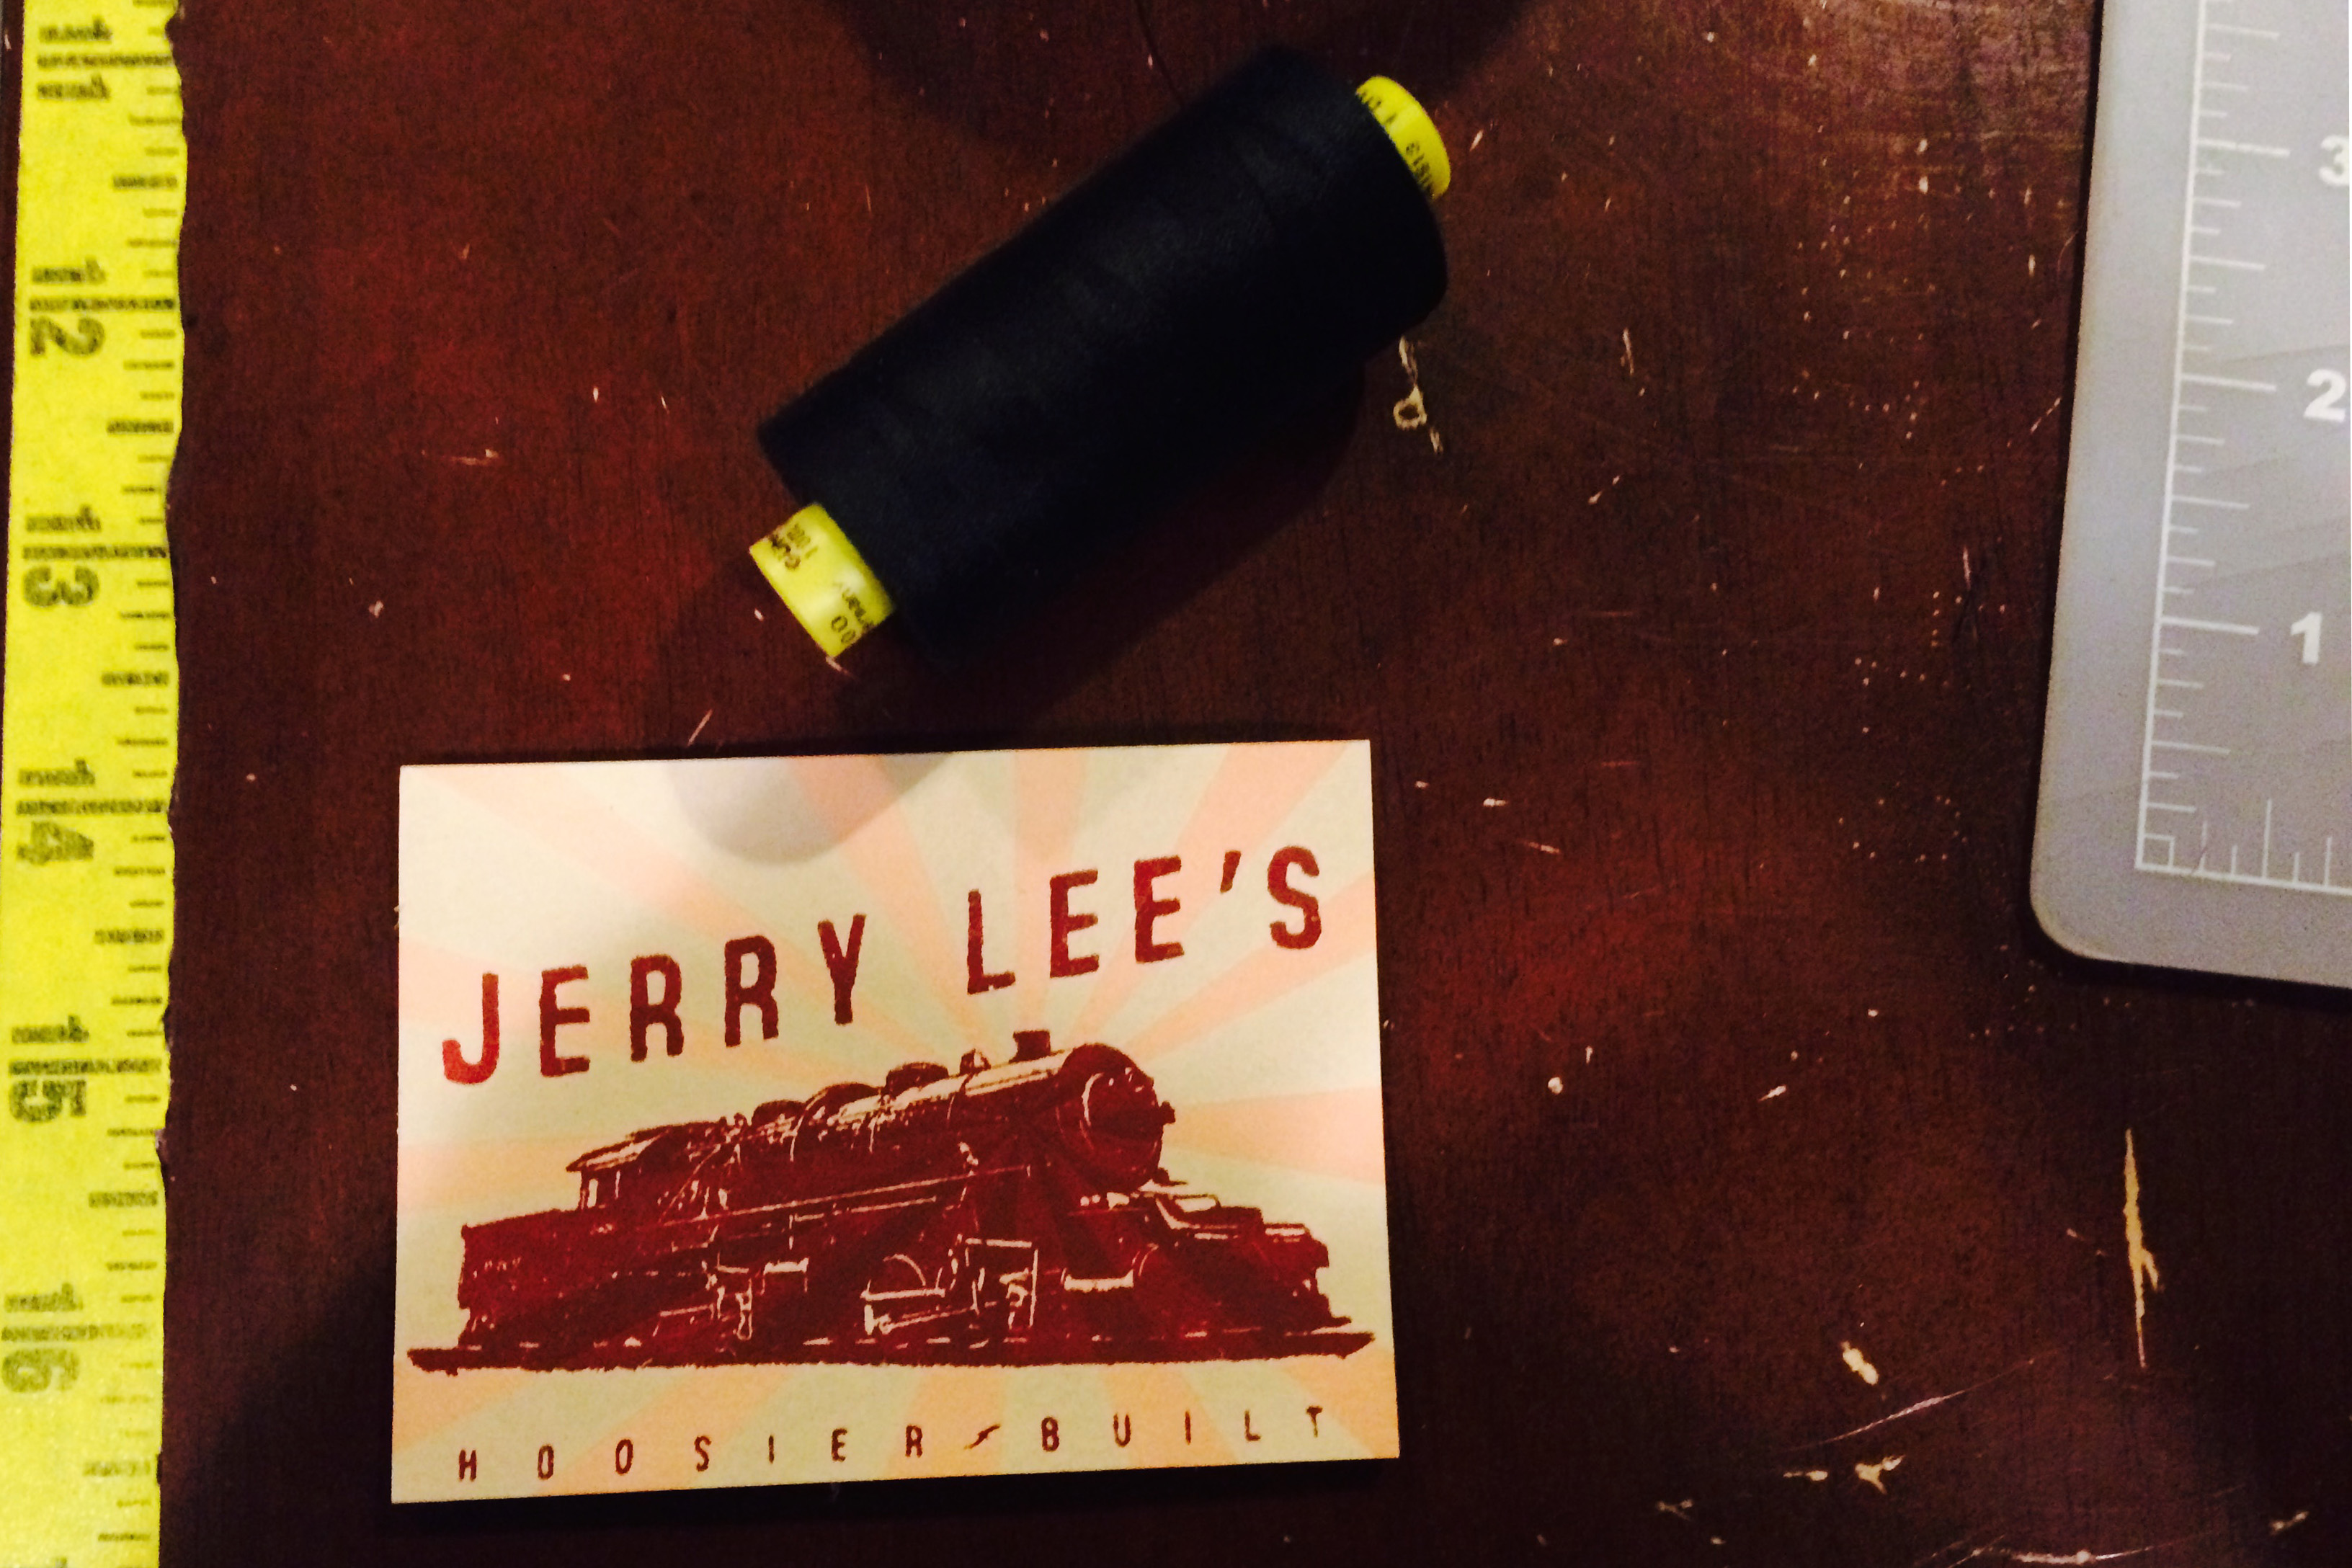 Jerry Lee's business card